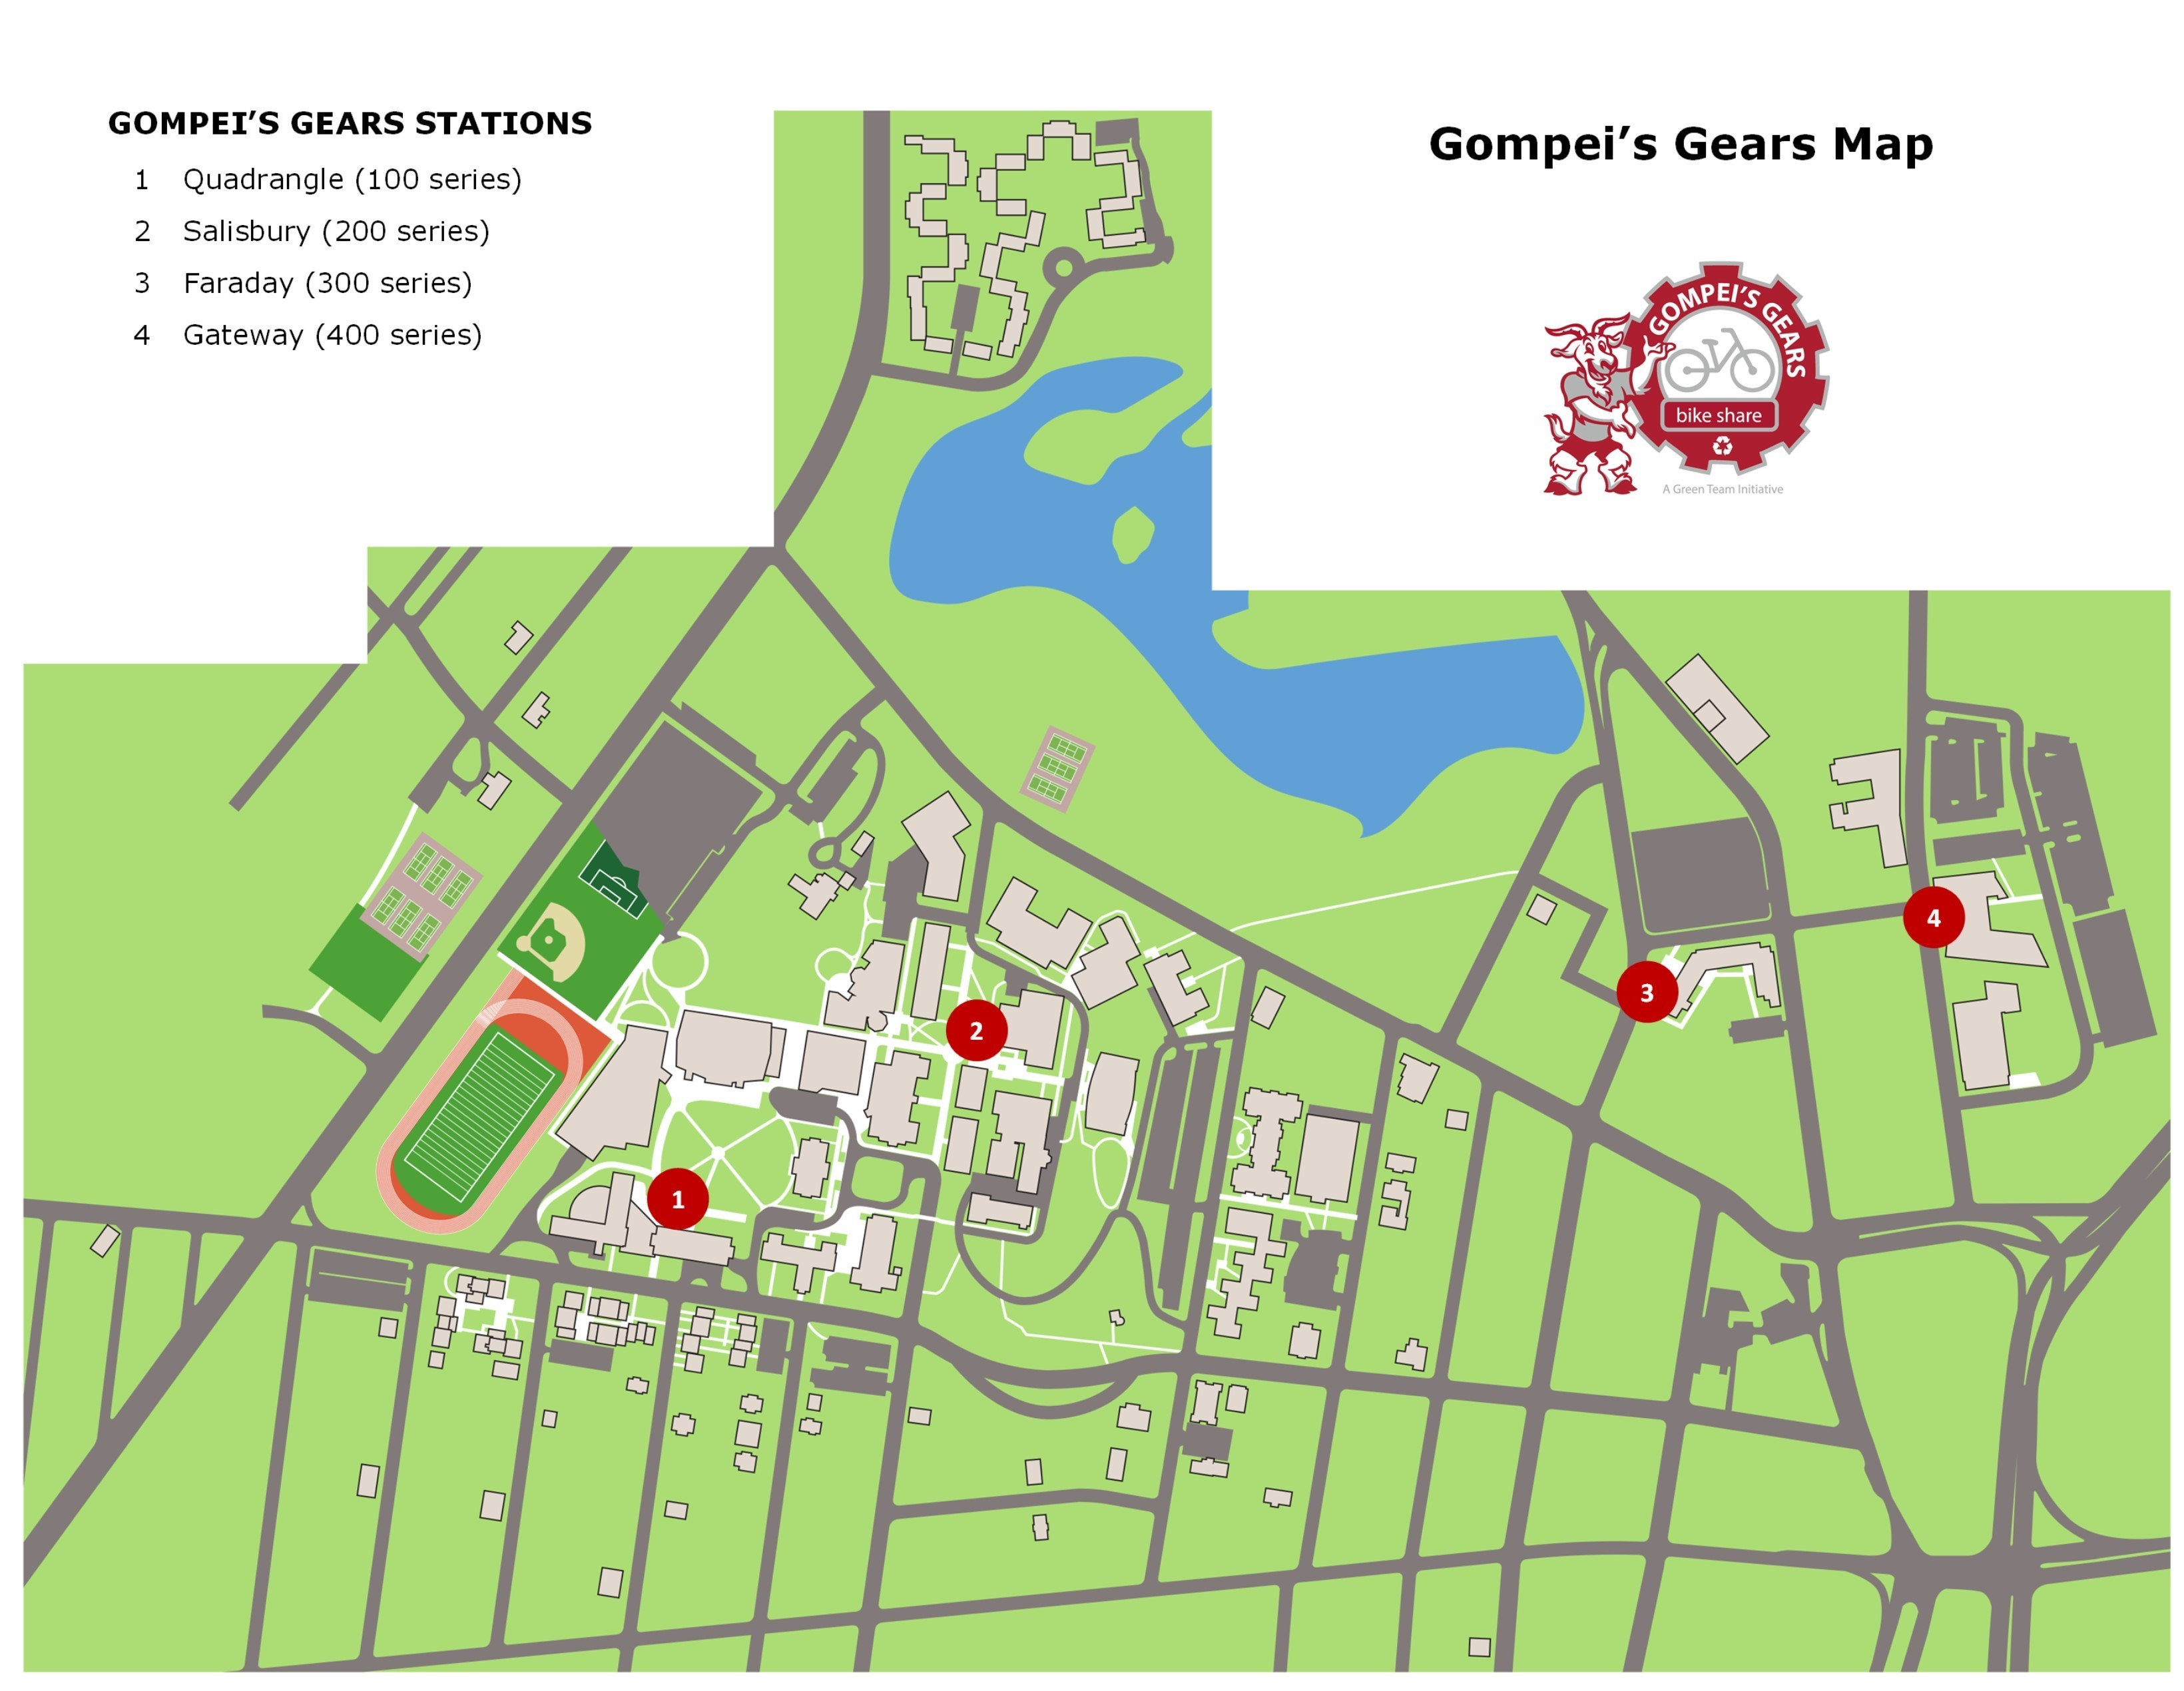 Gompei's Gears Map (as of 12/1/2018)